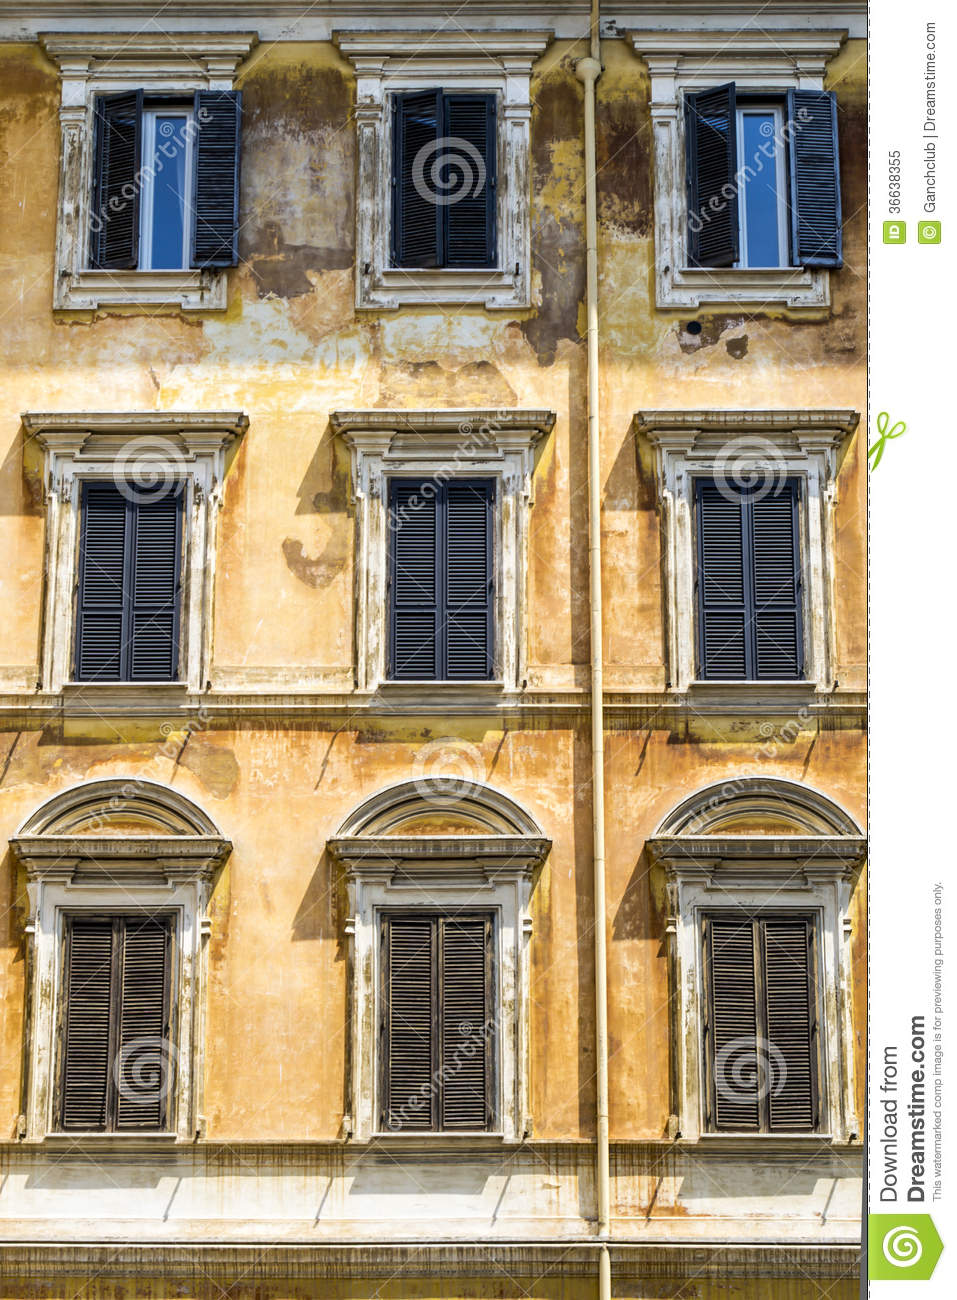 Fa ade antique de maison italienne photo libre de droits for Maison italienne architecture